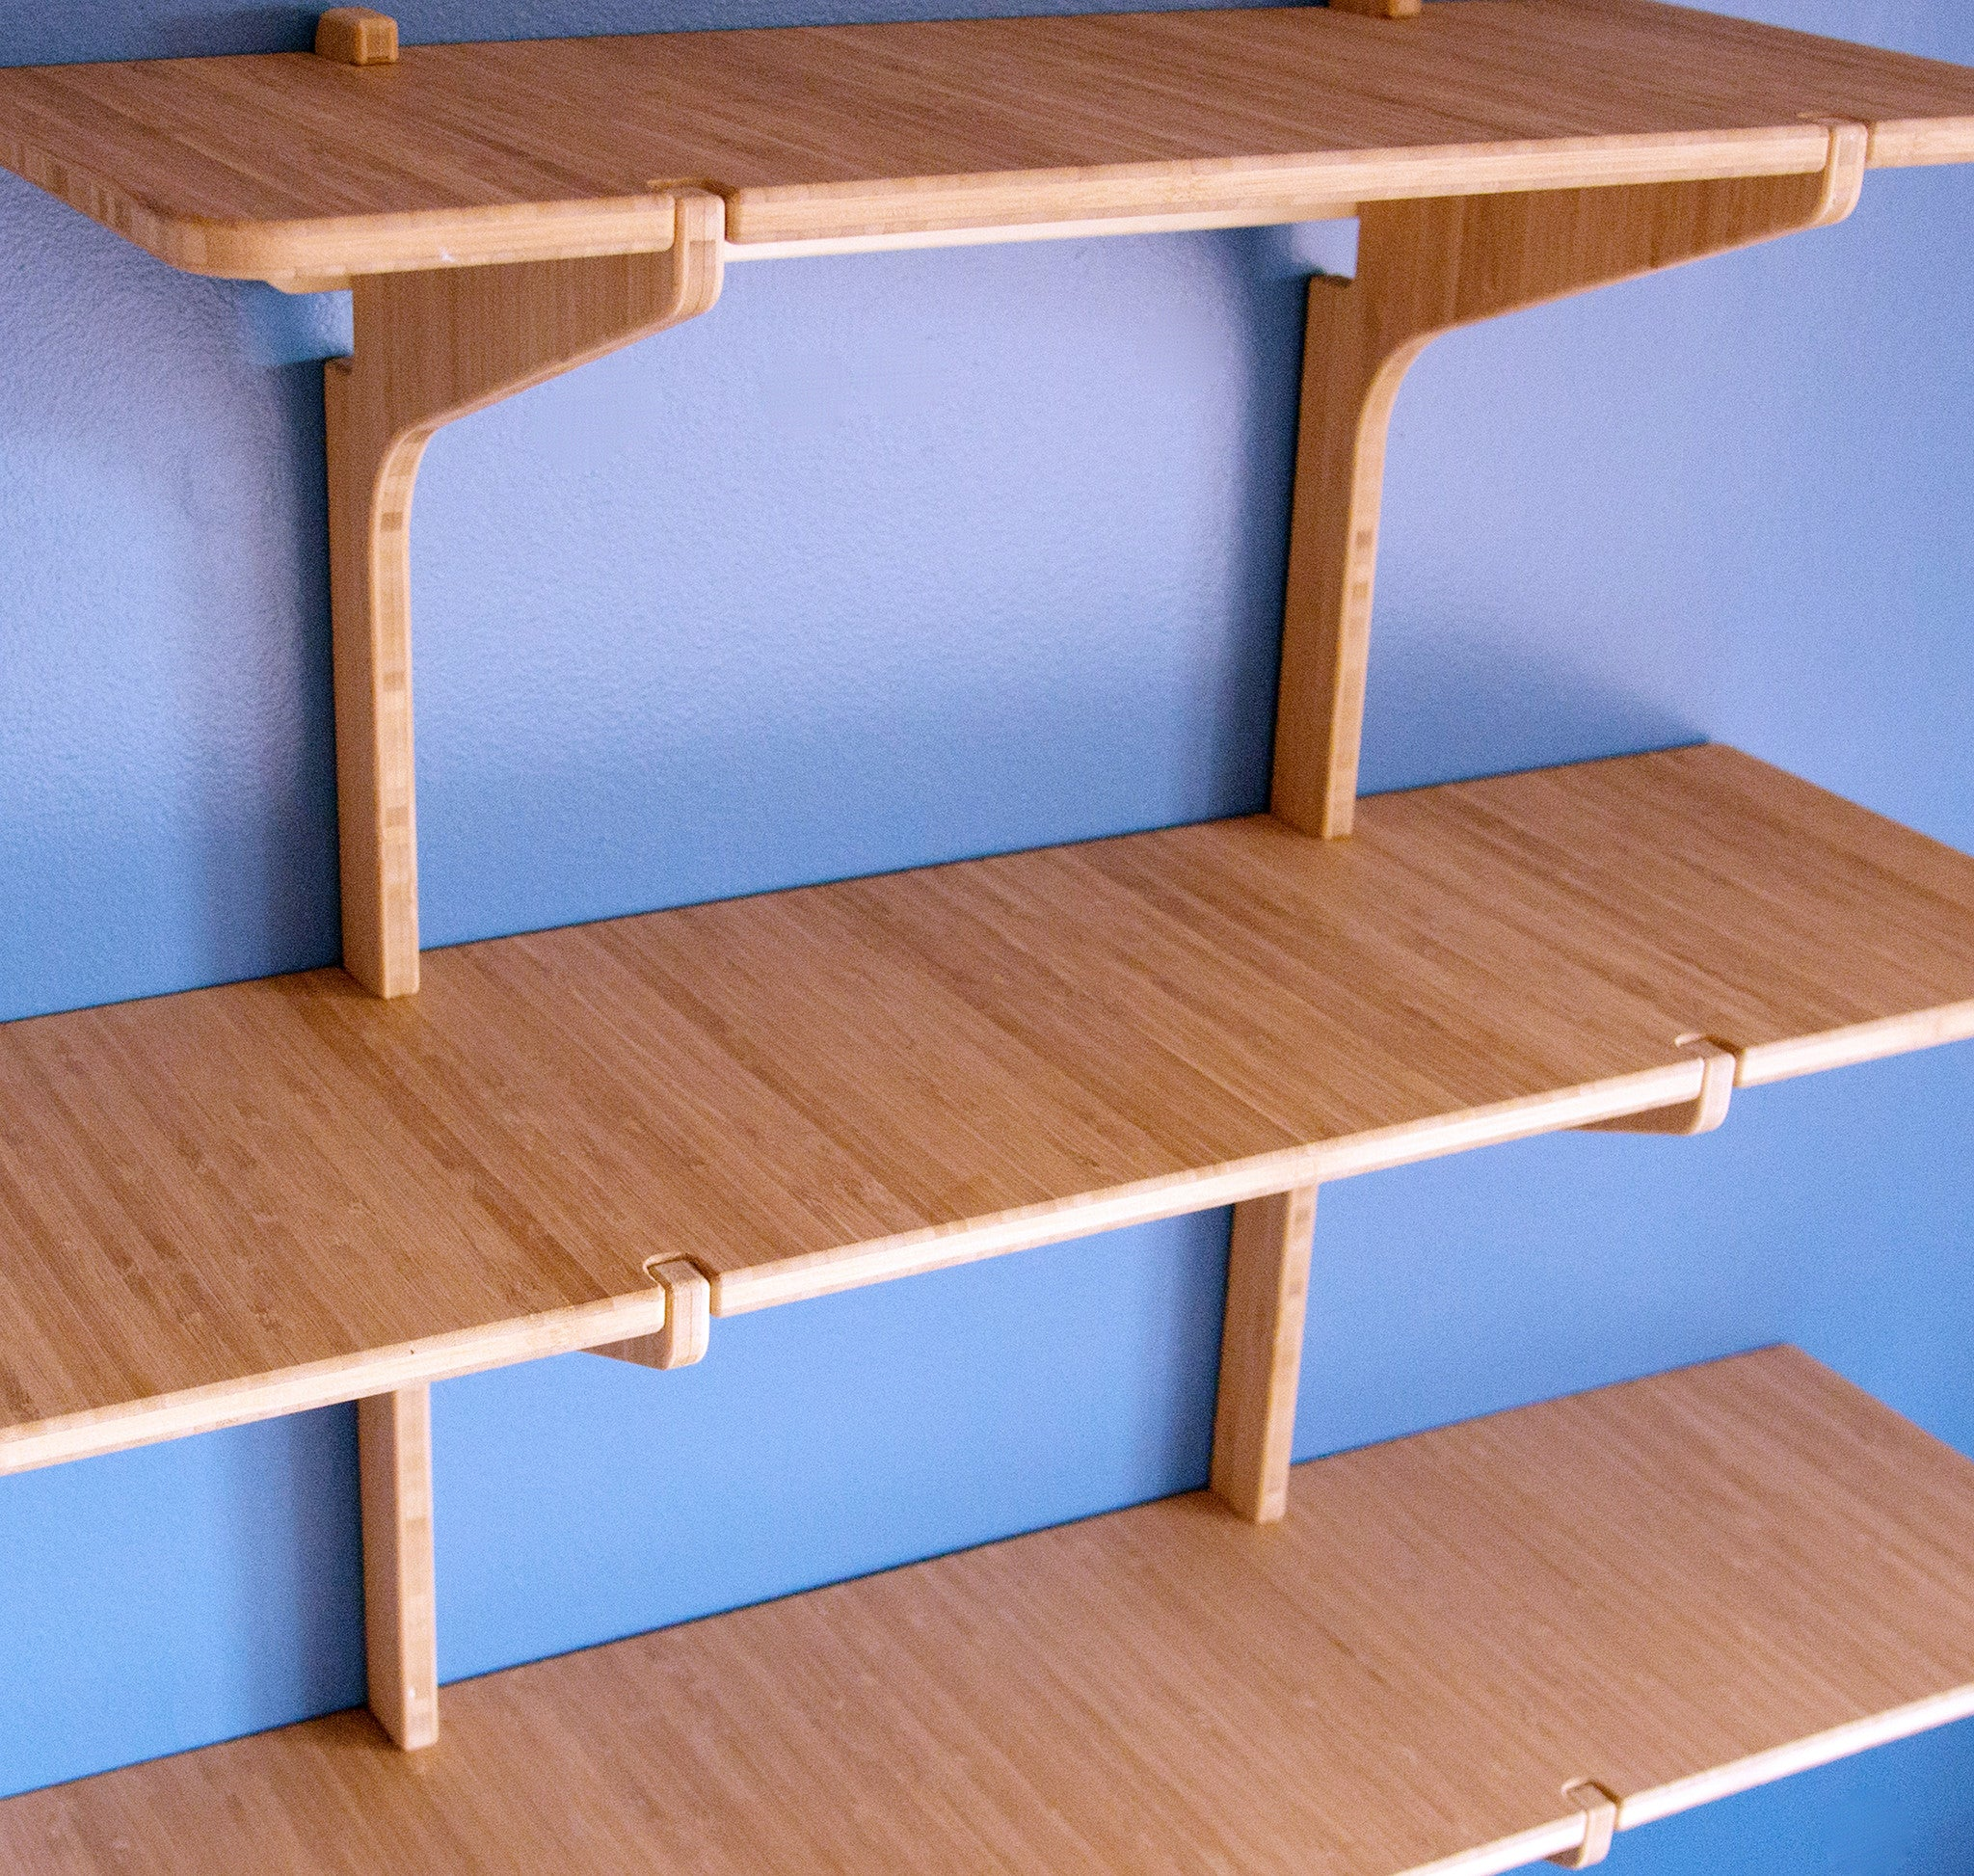 Bamboo Floating Shelves | Grassracks - Bamboo Surfboard Racks | SUP ...